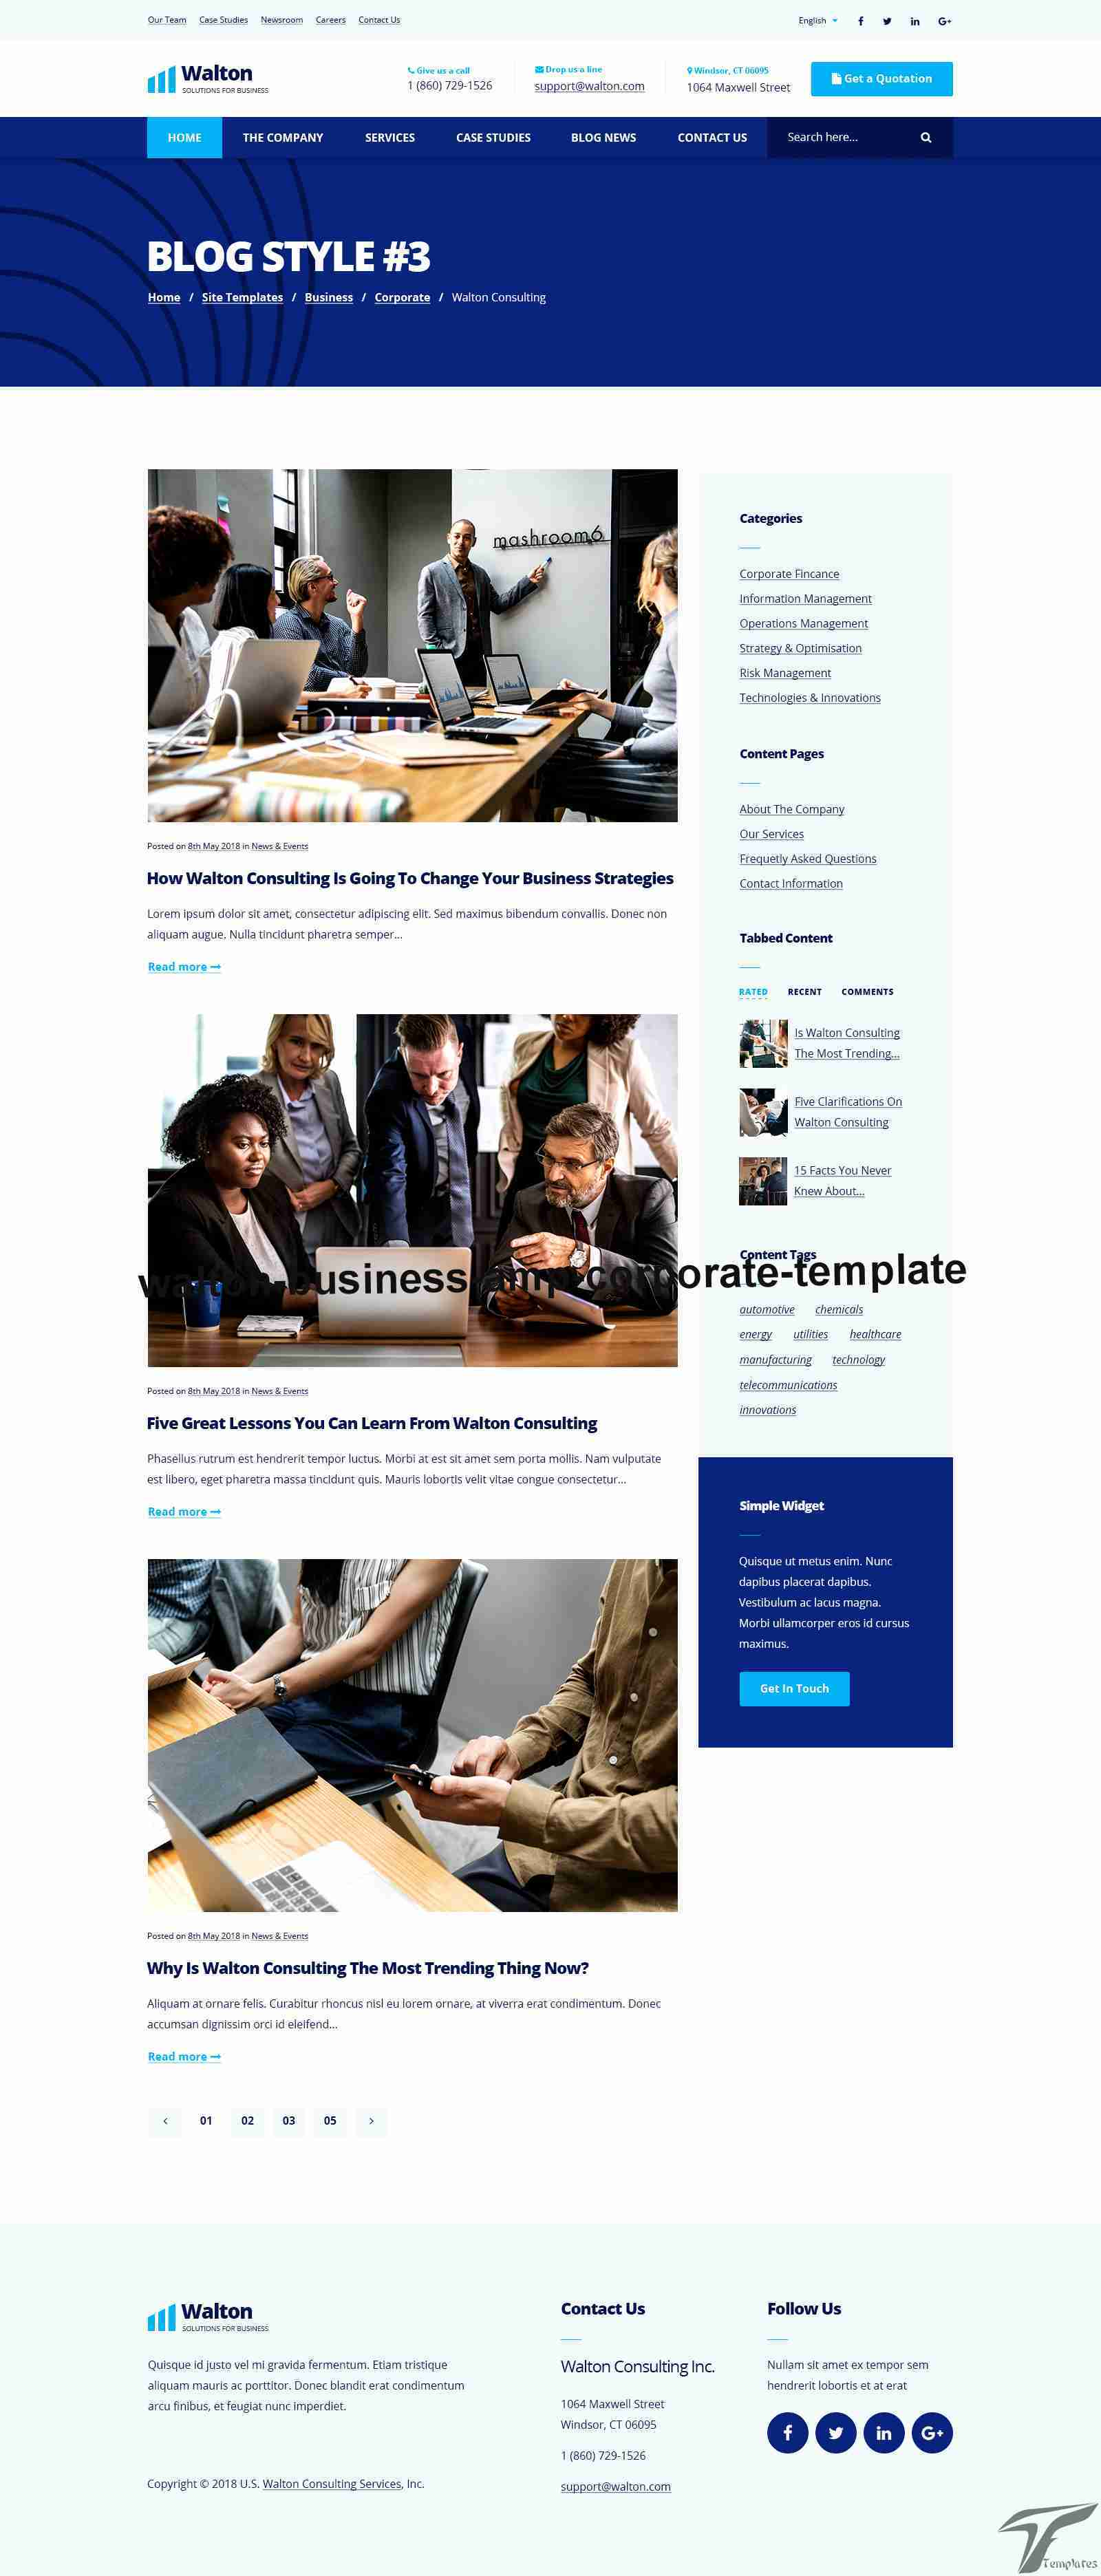 https://images.besthemes.com/images/h1_walton-business-amp-corporate-template17-_-248336682-sshot-17_walton_blog_3.jpg